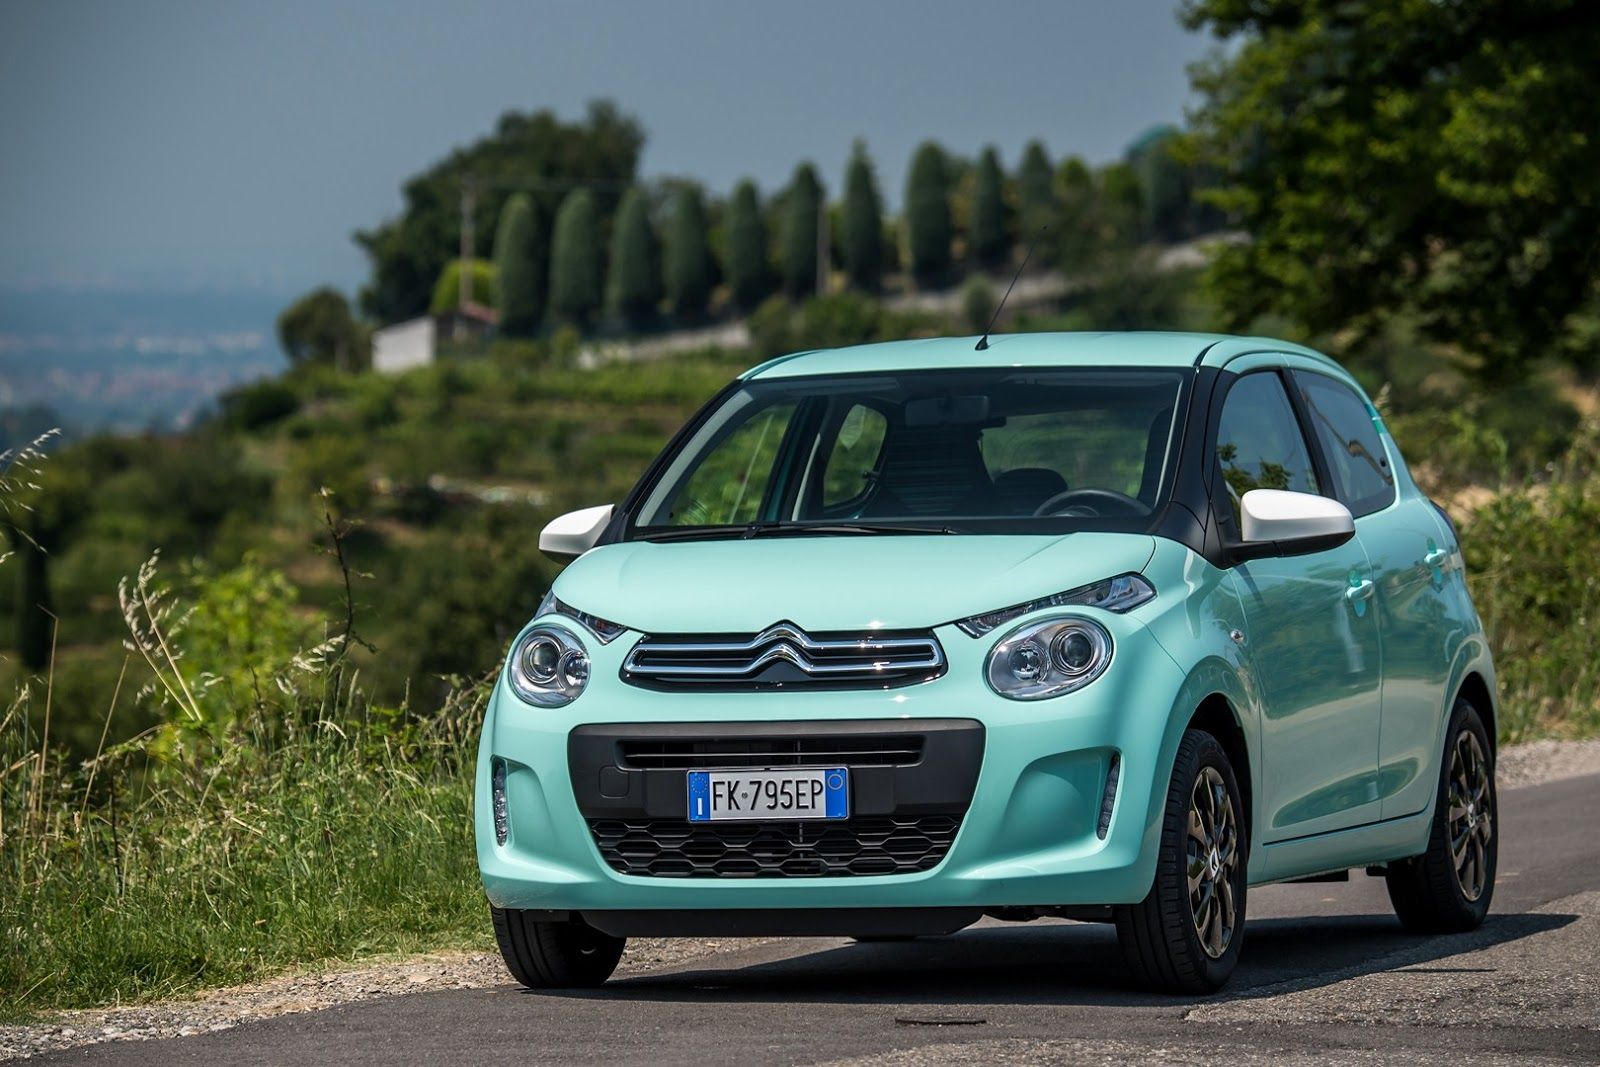 citroen c1 pacific edition is exclusive to italy carscoops. Black Bedroom Furniture Sets. Home Design Ideas